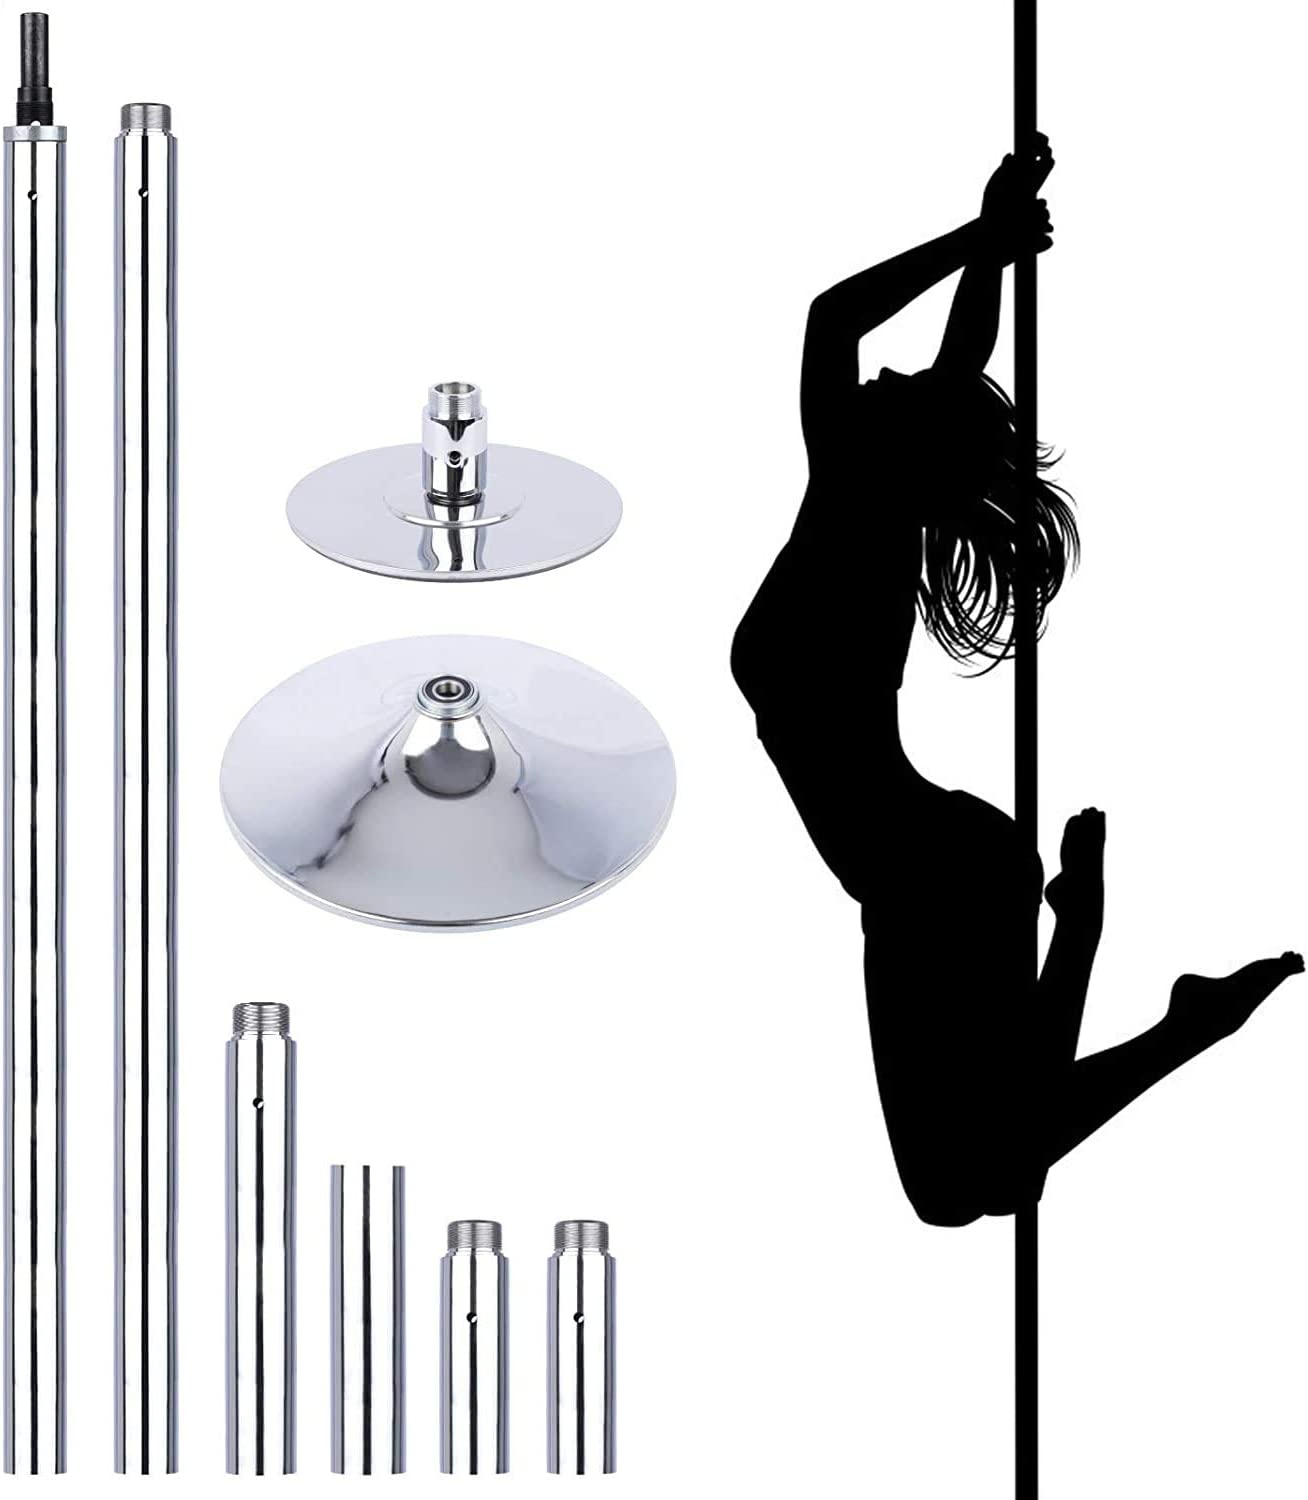 N/D Professional Stripper Pole Portable Removable Spinning Static Dancing Pole 45mm Height Adjustable Dance Pole Kit for Exercise Club Party Pub Home Fitness